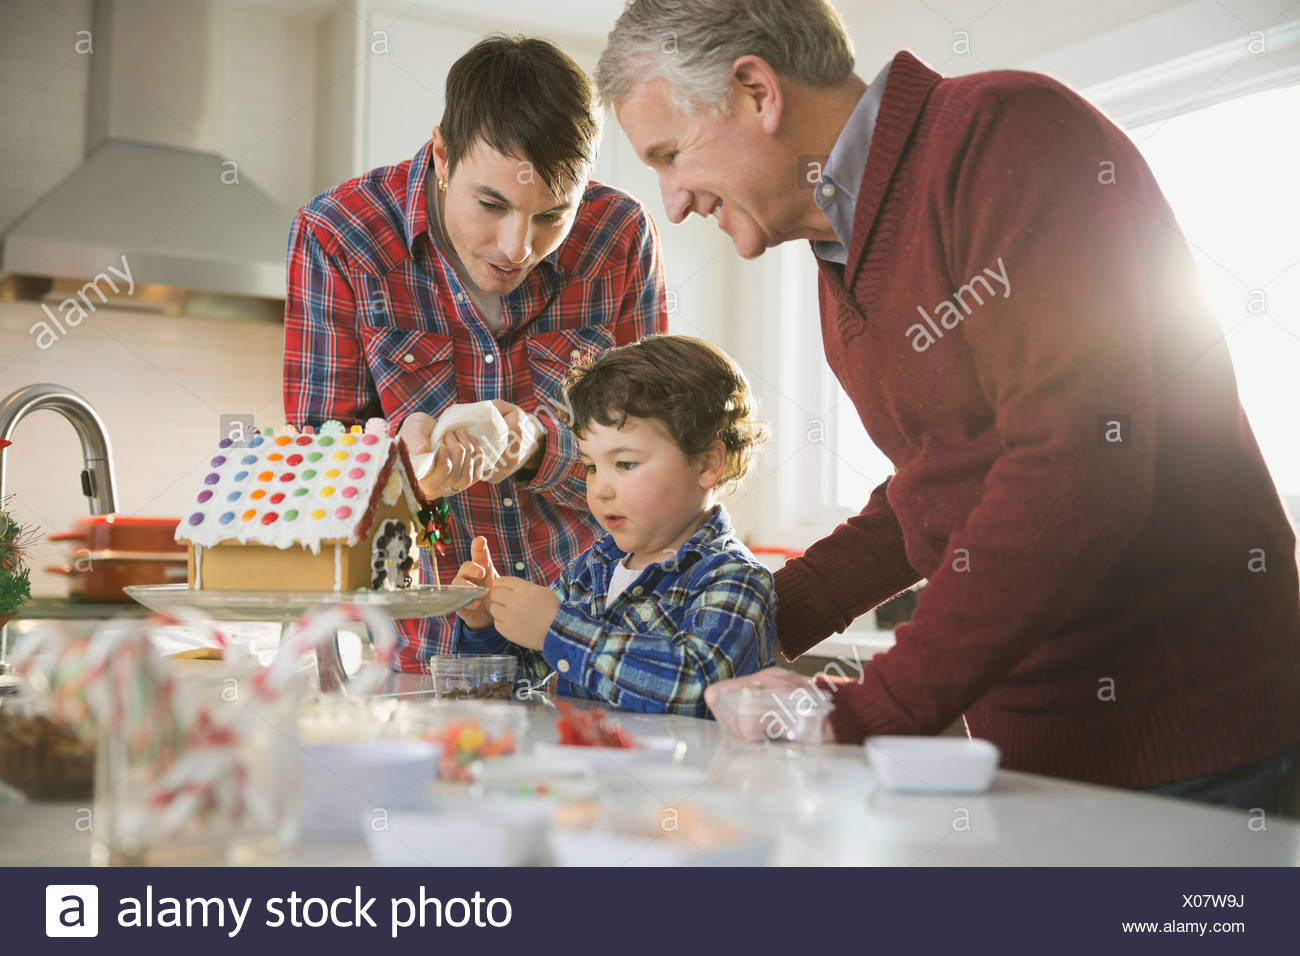 Three generation males decorating gingerbread house at Christmas - Stock Image